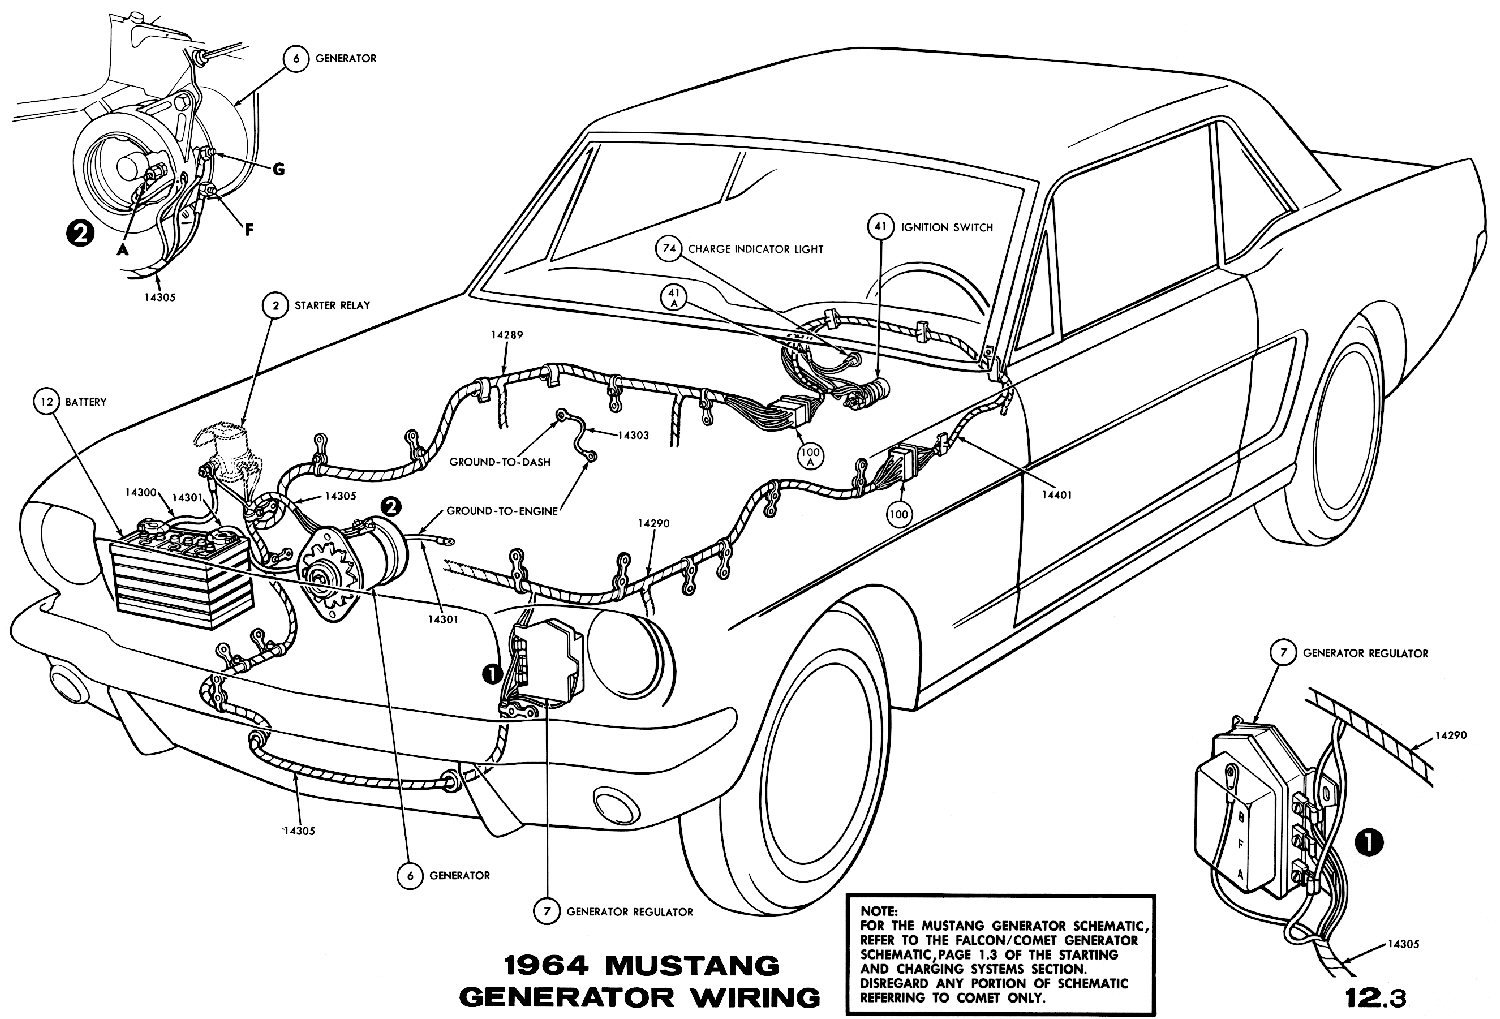 1964 mustang wiring diagrams average joe restoration rh  averagejoerestoration com 1964 mustang dash wiring diagram